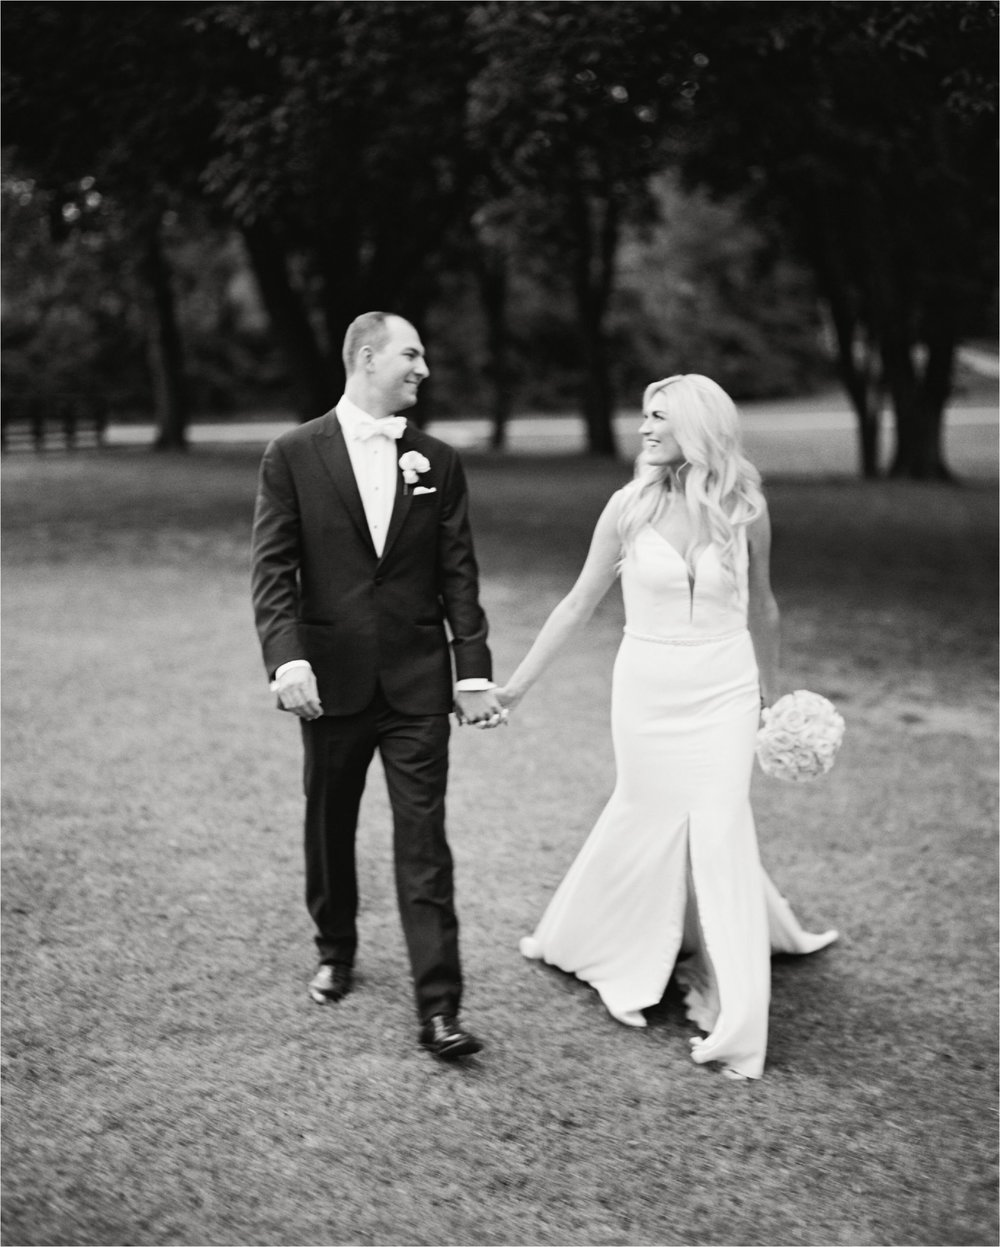 oklahoma_spainranch_film_fineartweddingphotographer_0058.JPG